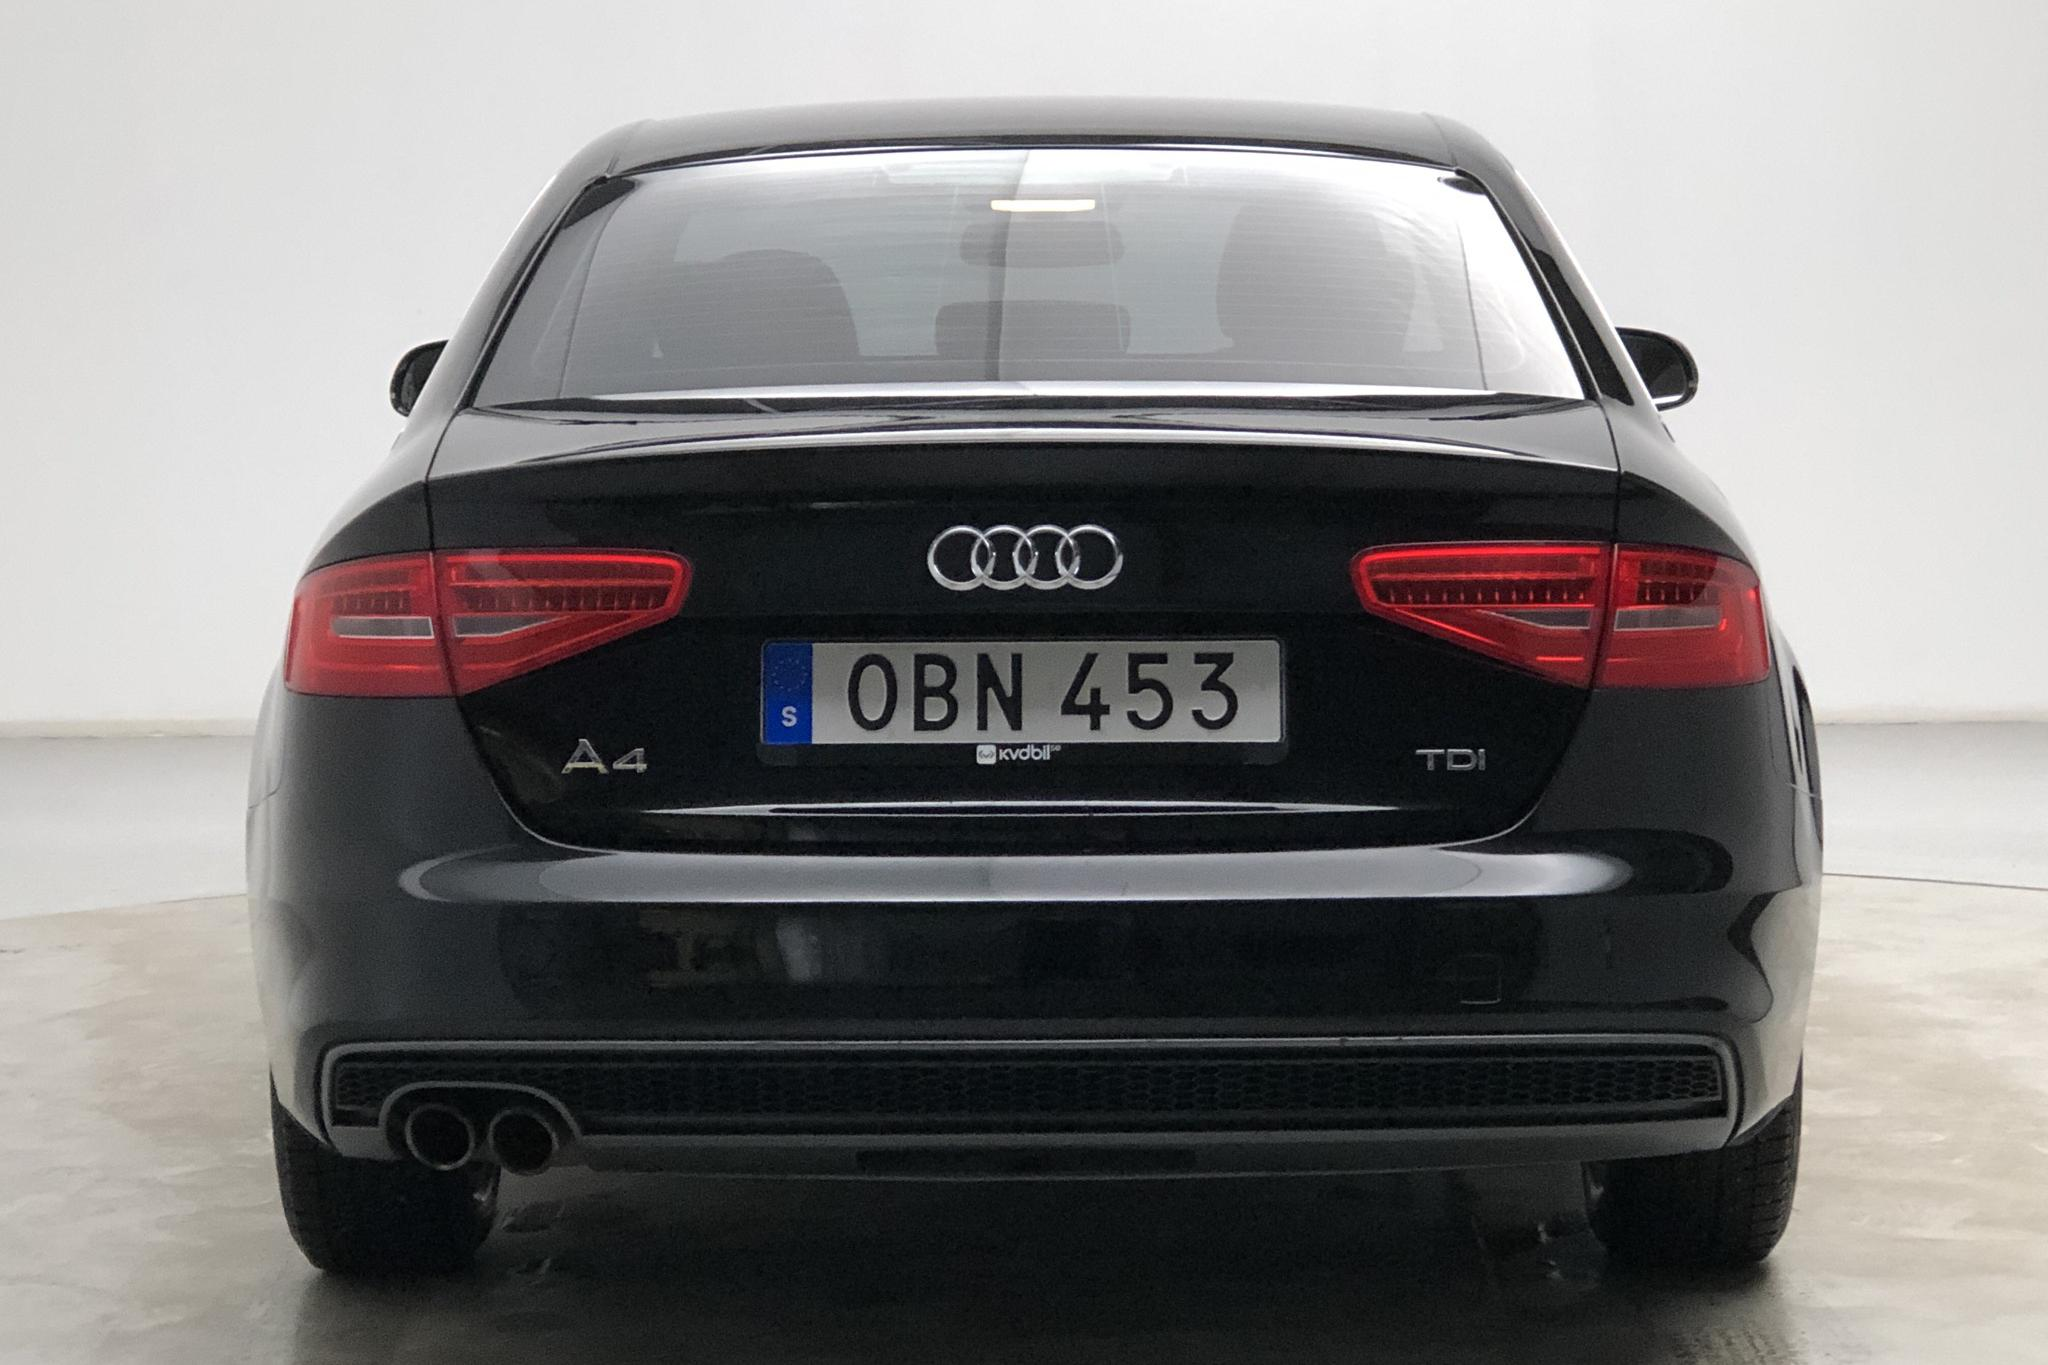 Audi A4 2.0 TDI (177hk) - 133 590 km - Manual - black - 2014